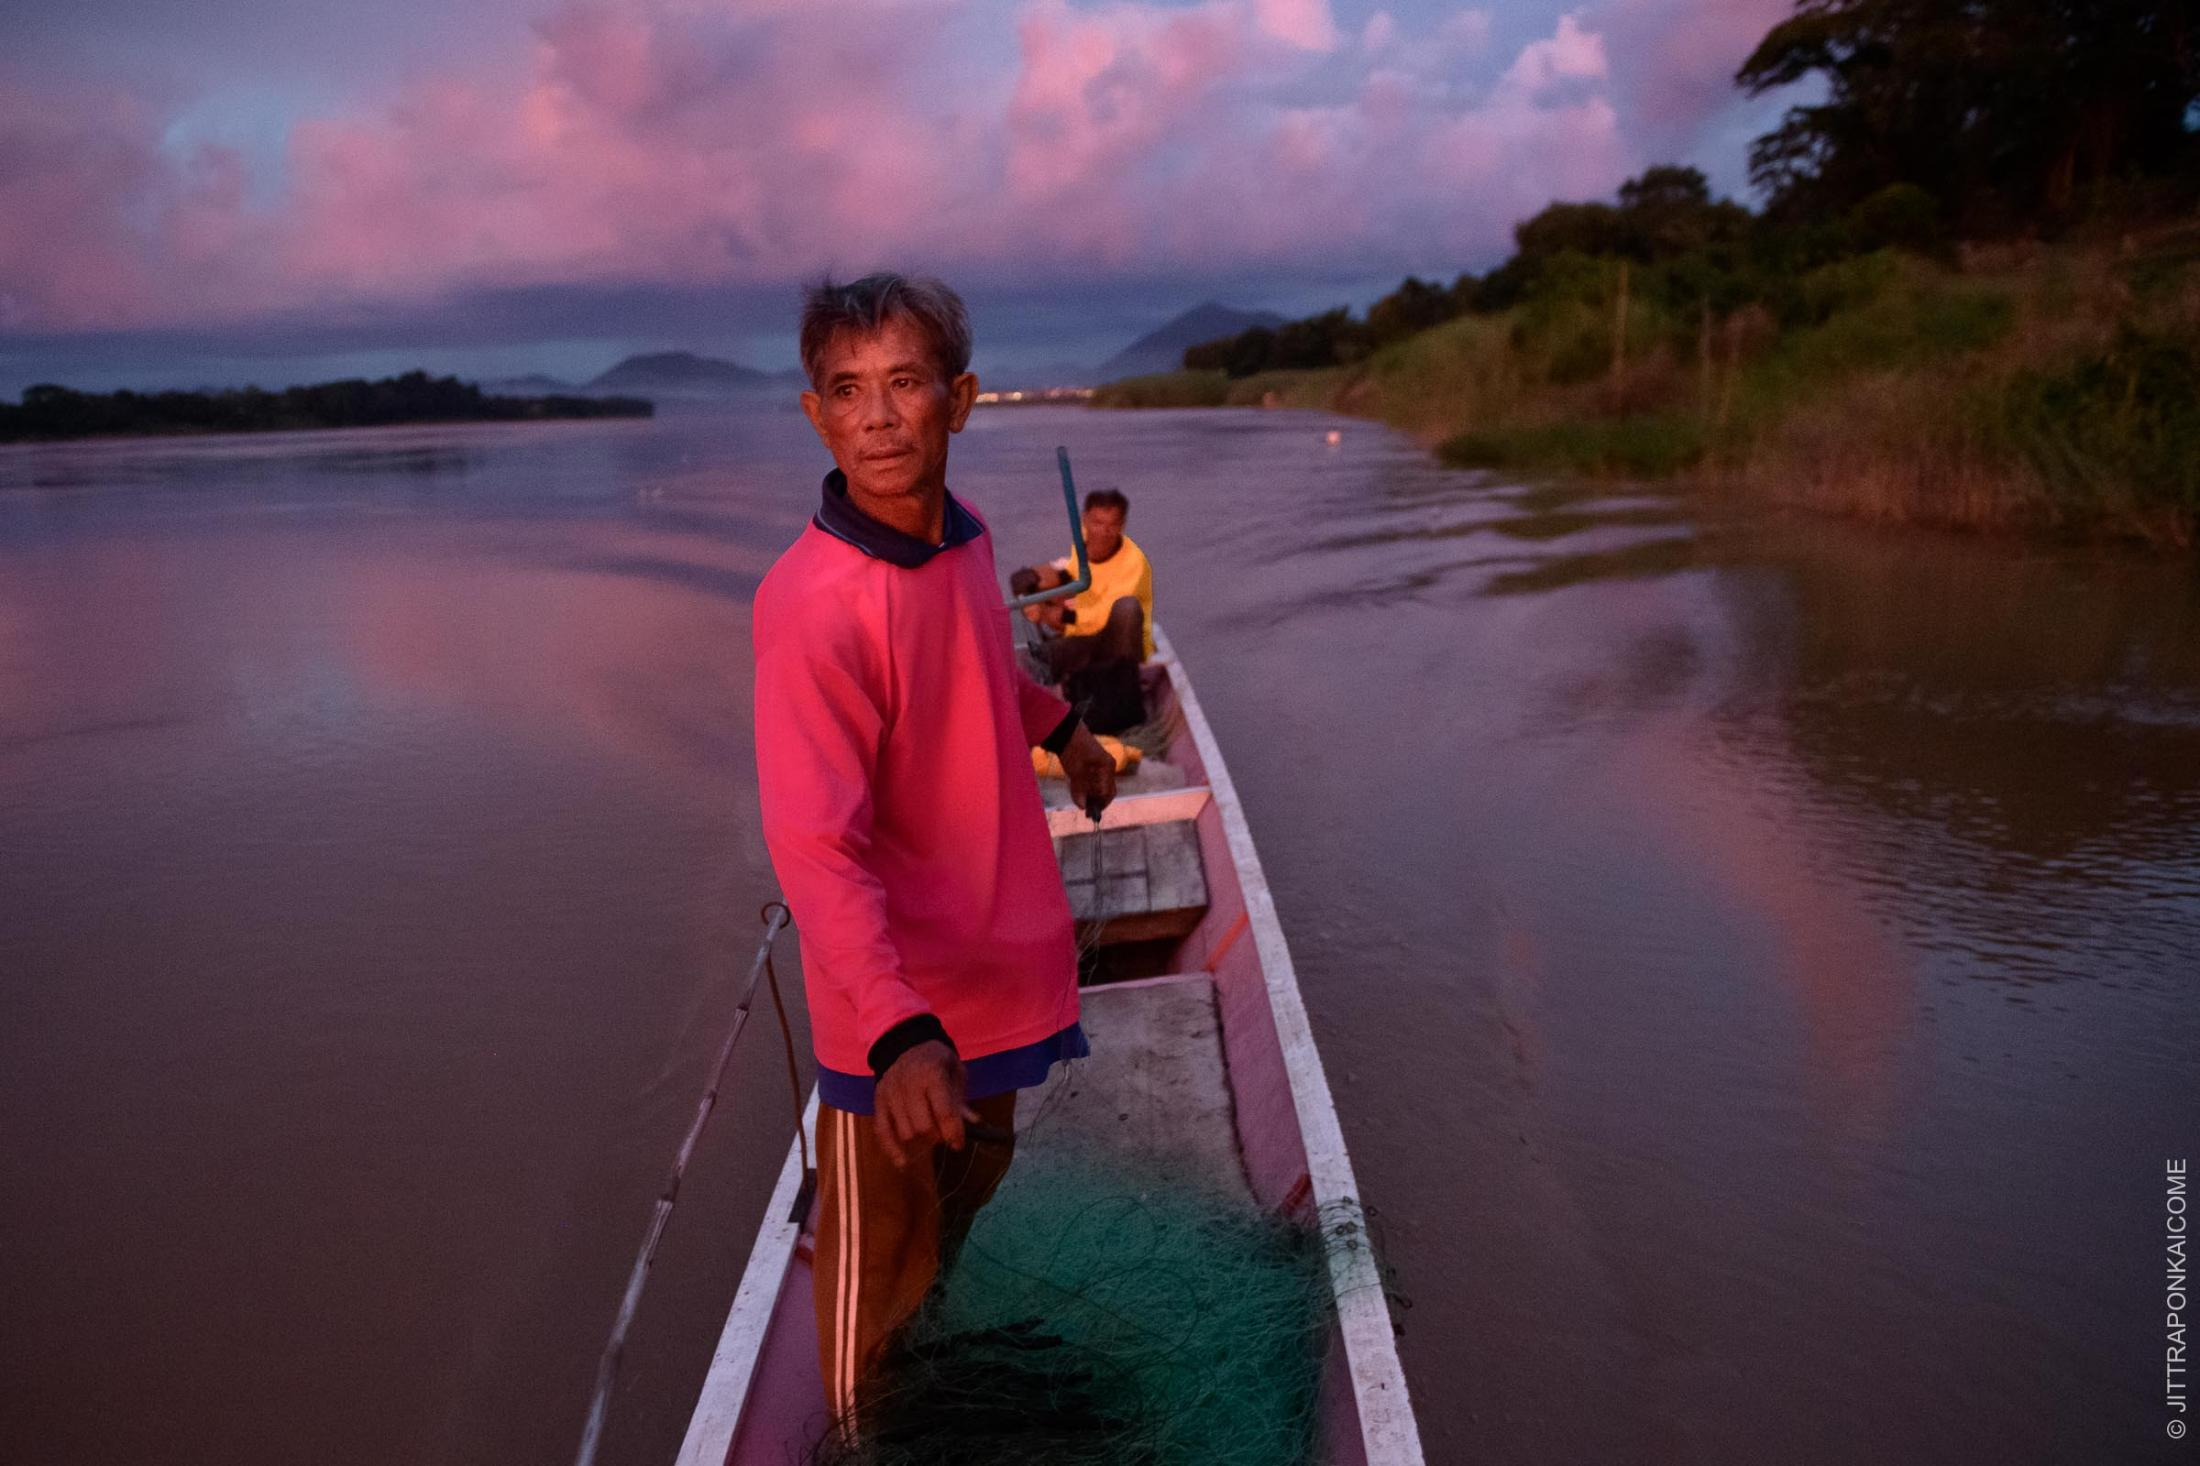 Prayoon Sanair is sailing out to find fish during the sunset. He is 63 years old and has been a fisherman in Chiang Khan since childhood. After the riverine ecosystem was negatively affected, due to the Xayaburi Dam and other dams upstream, making money from fishing became hard. He's now relying on alternative jobs such as farming rubber and work in the construction sector. In Loei, Thailand – August 2020.